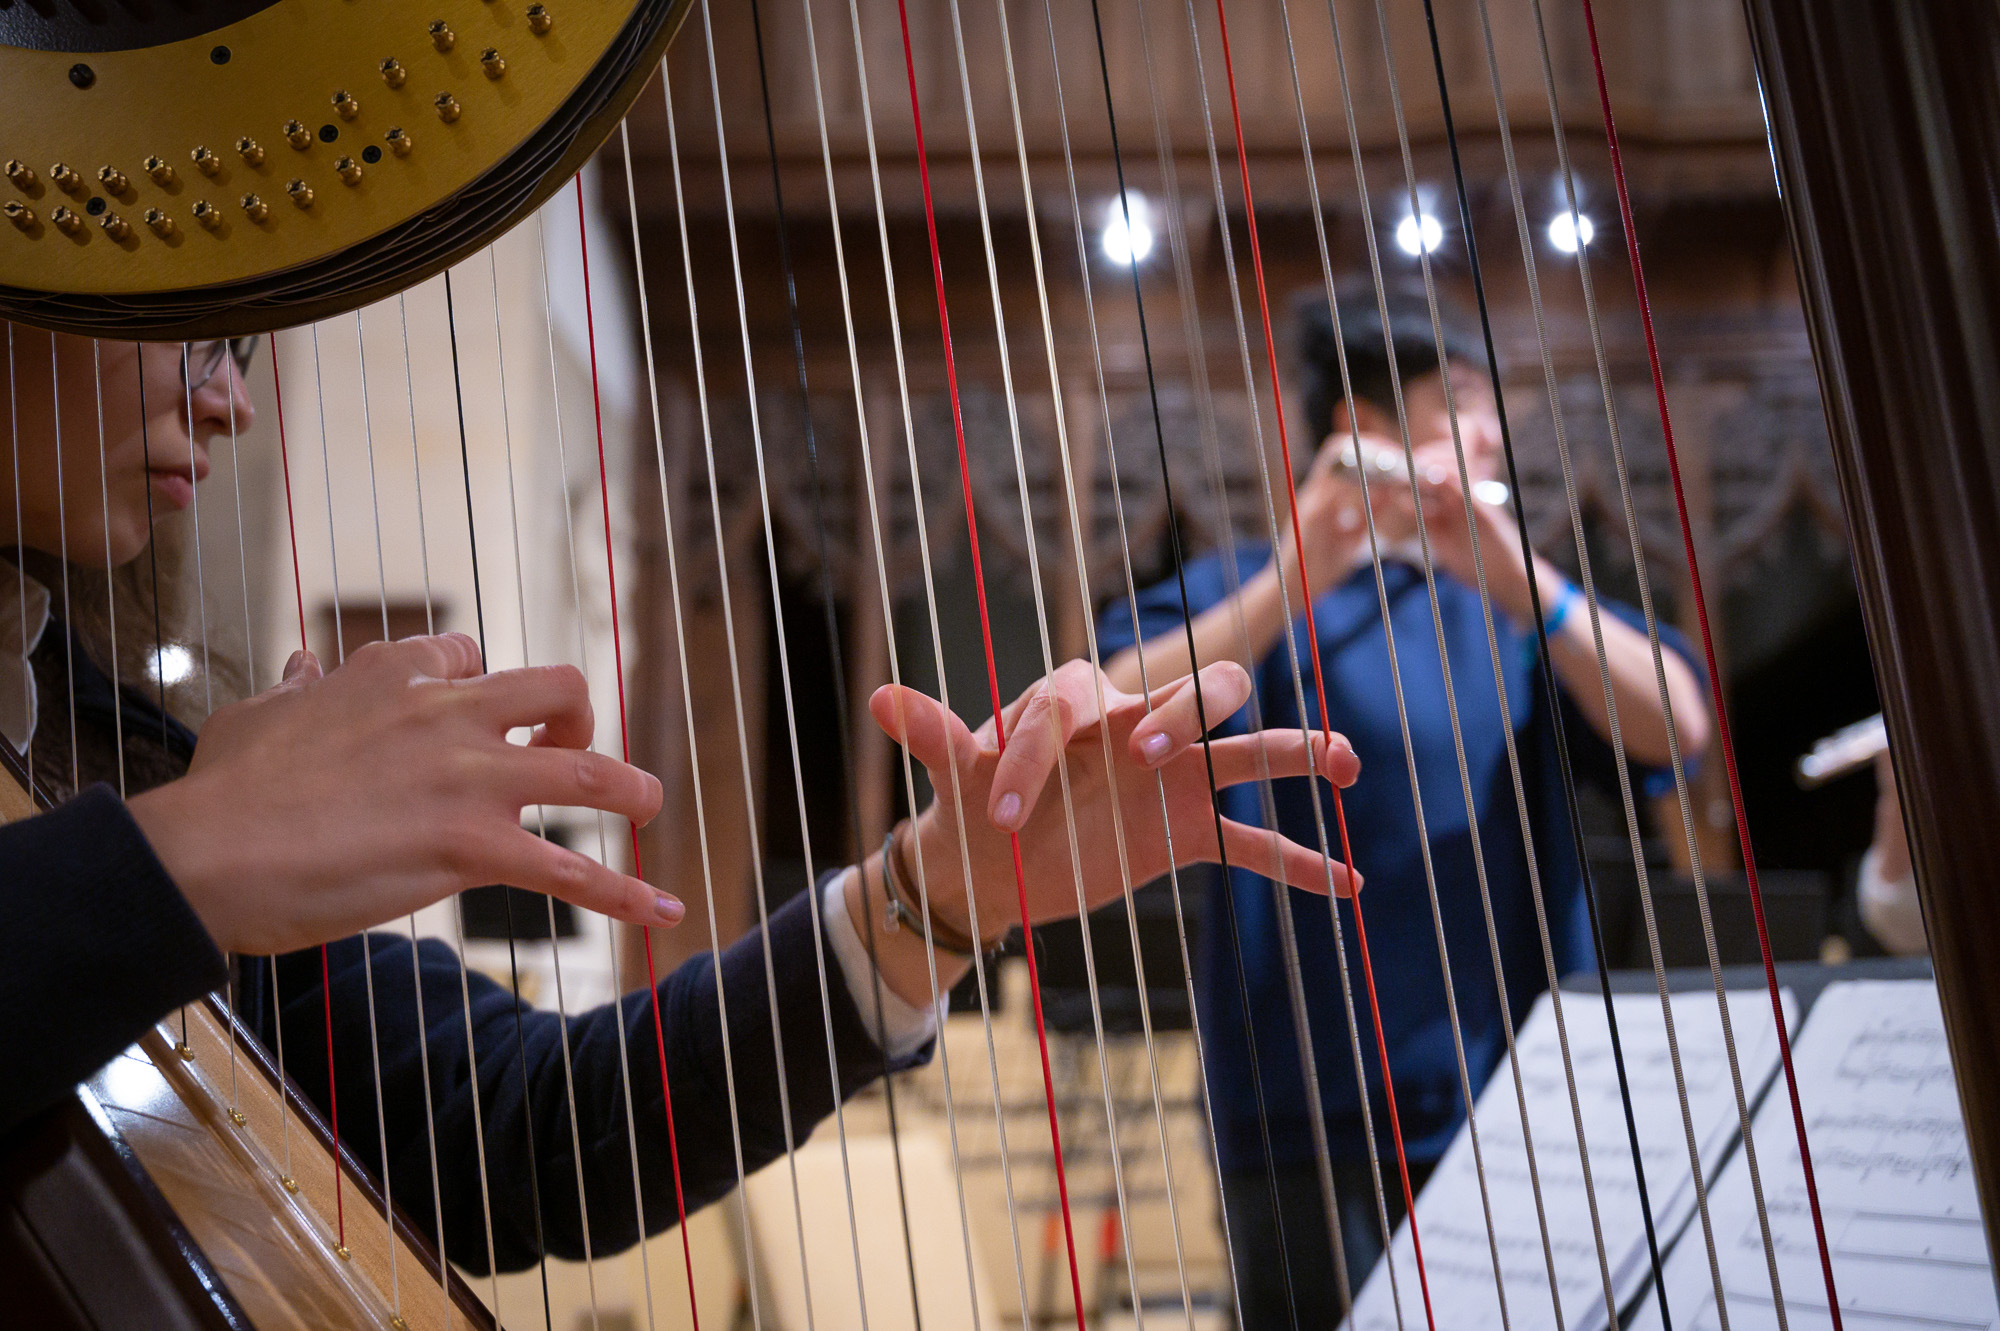 Magdalen College School pupil playing the harp